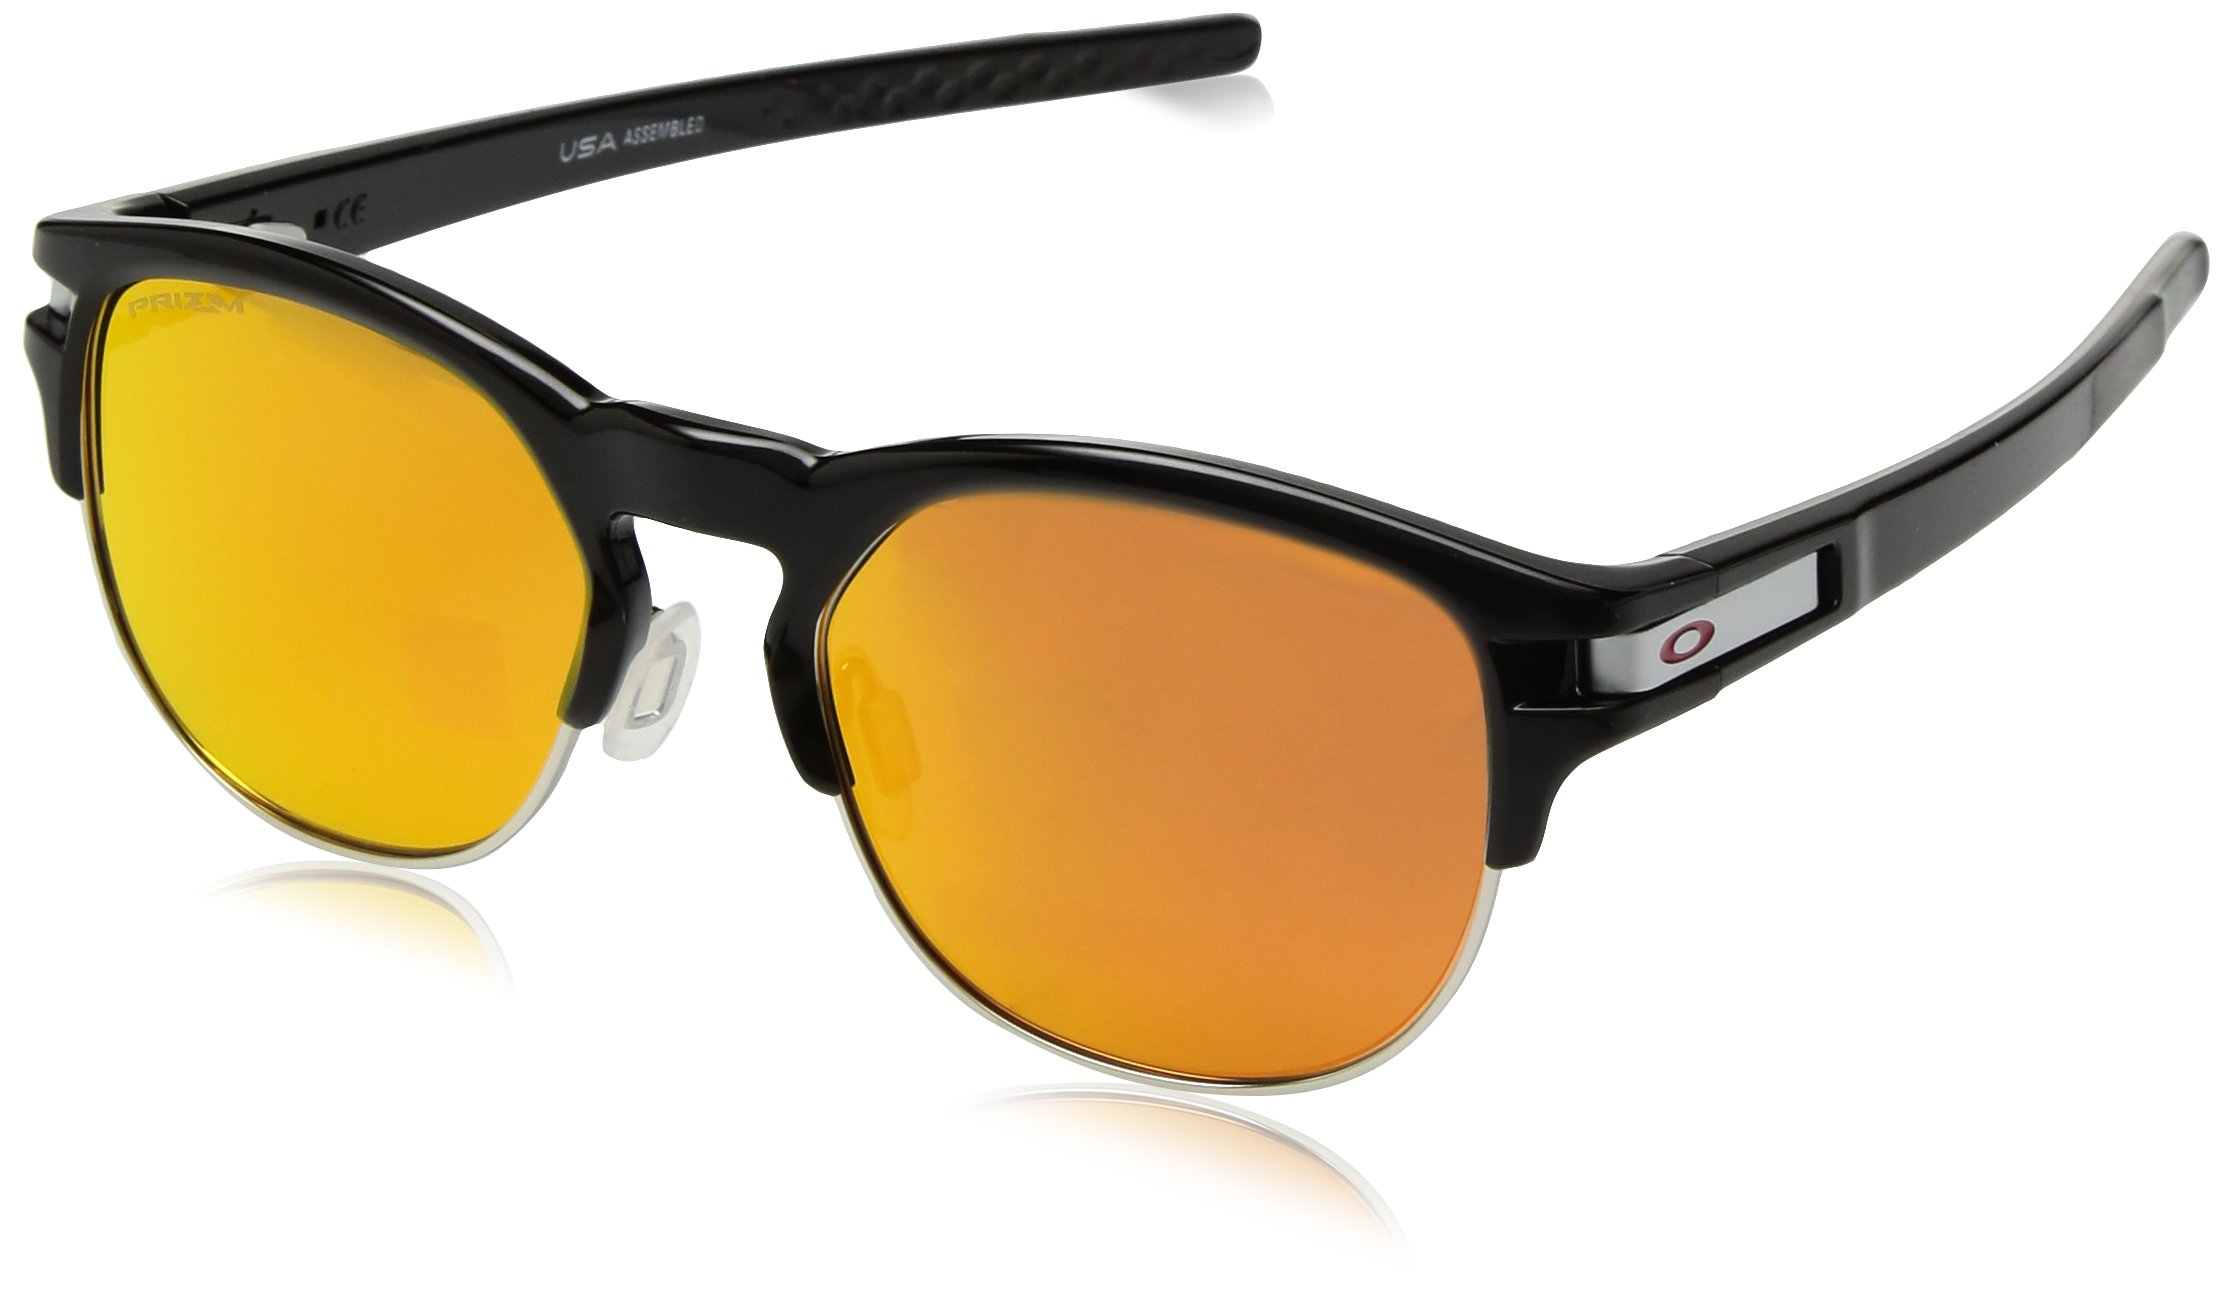 cfa88f2d55 Catalogo Gafas Ray Ban Chile – Southern California Weather Force